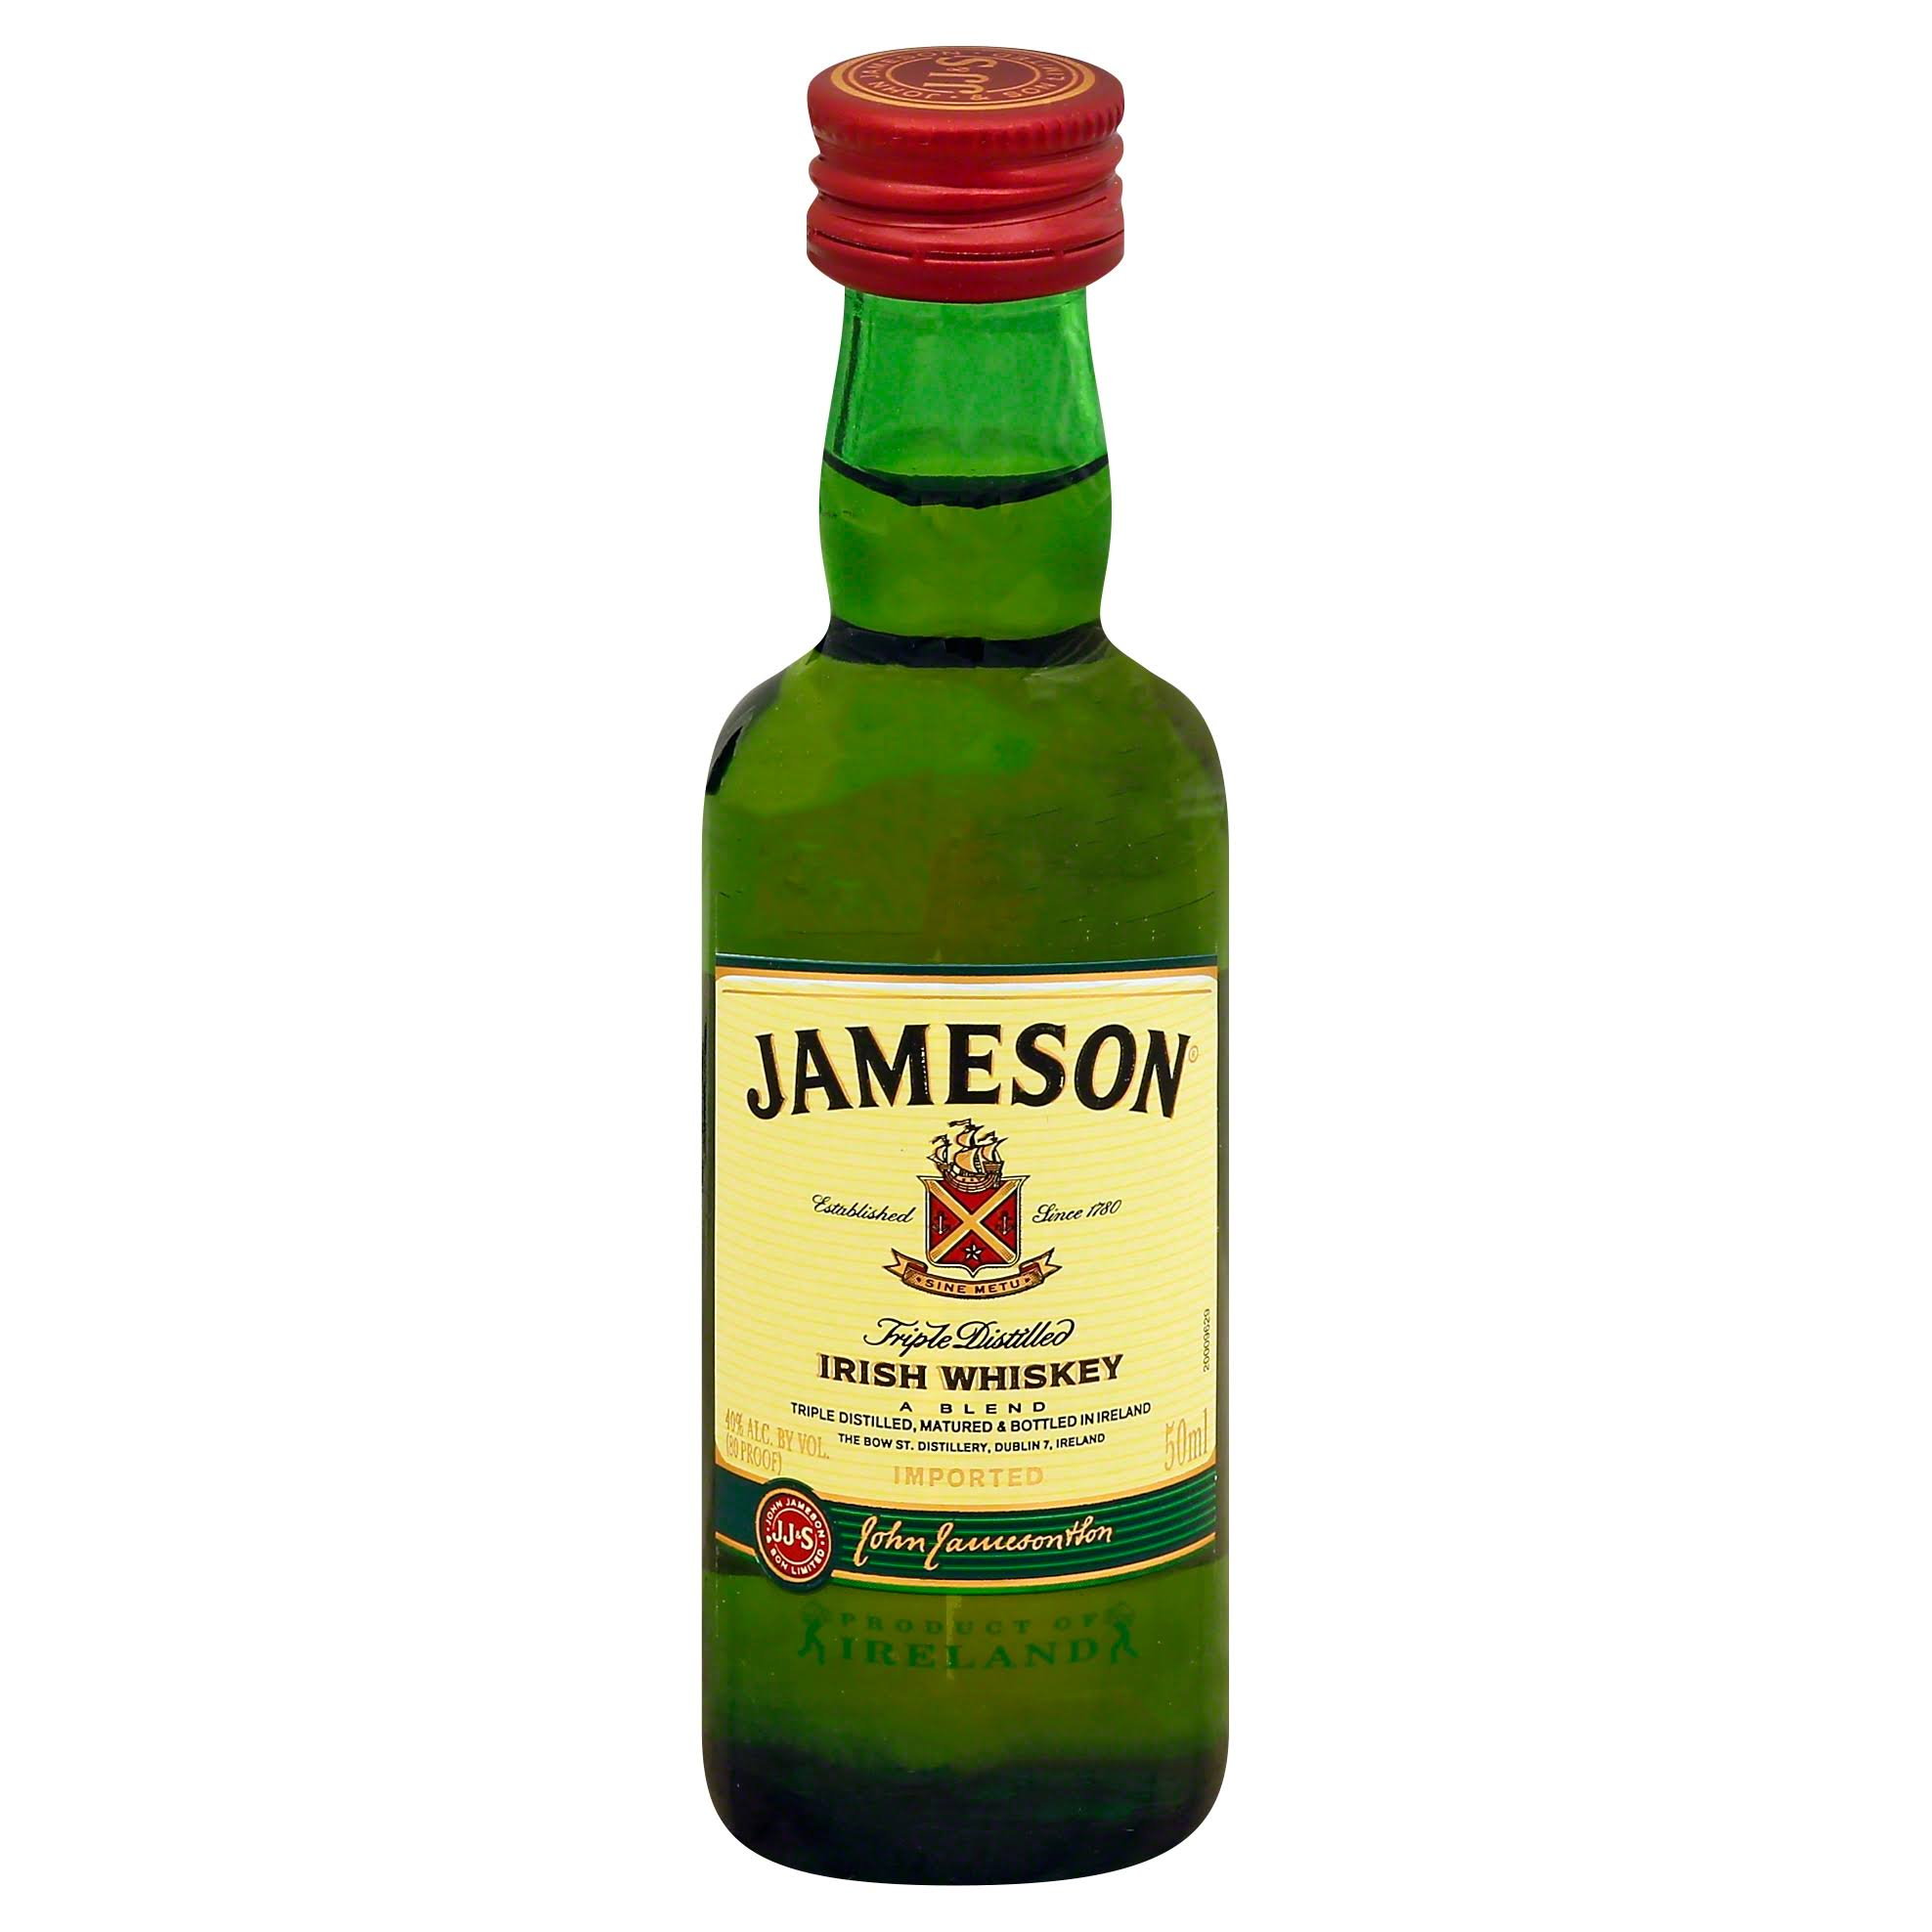 Jameson Whiskey, Irish, Triple Distilled - 50 ml